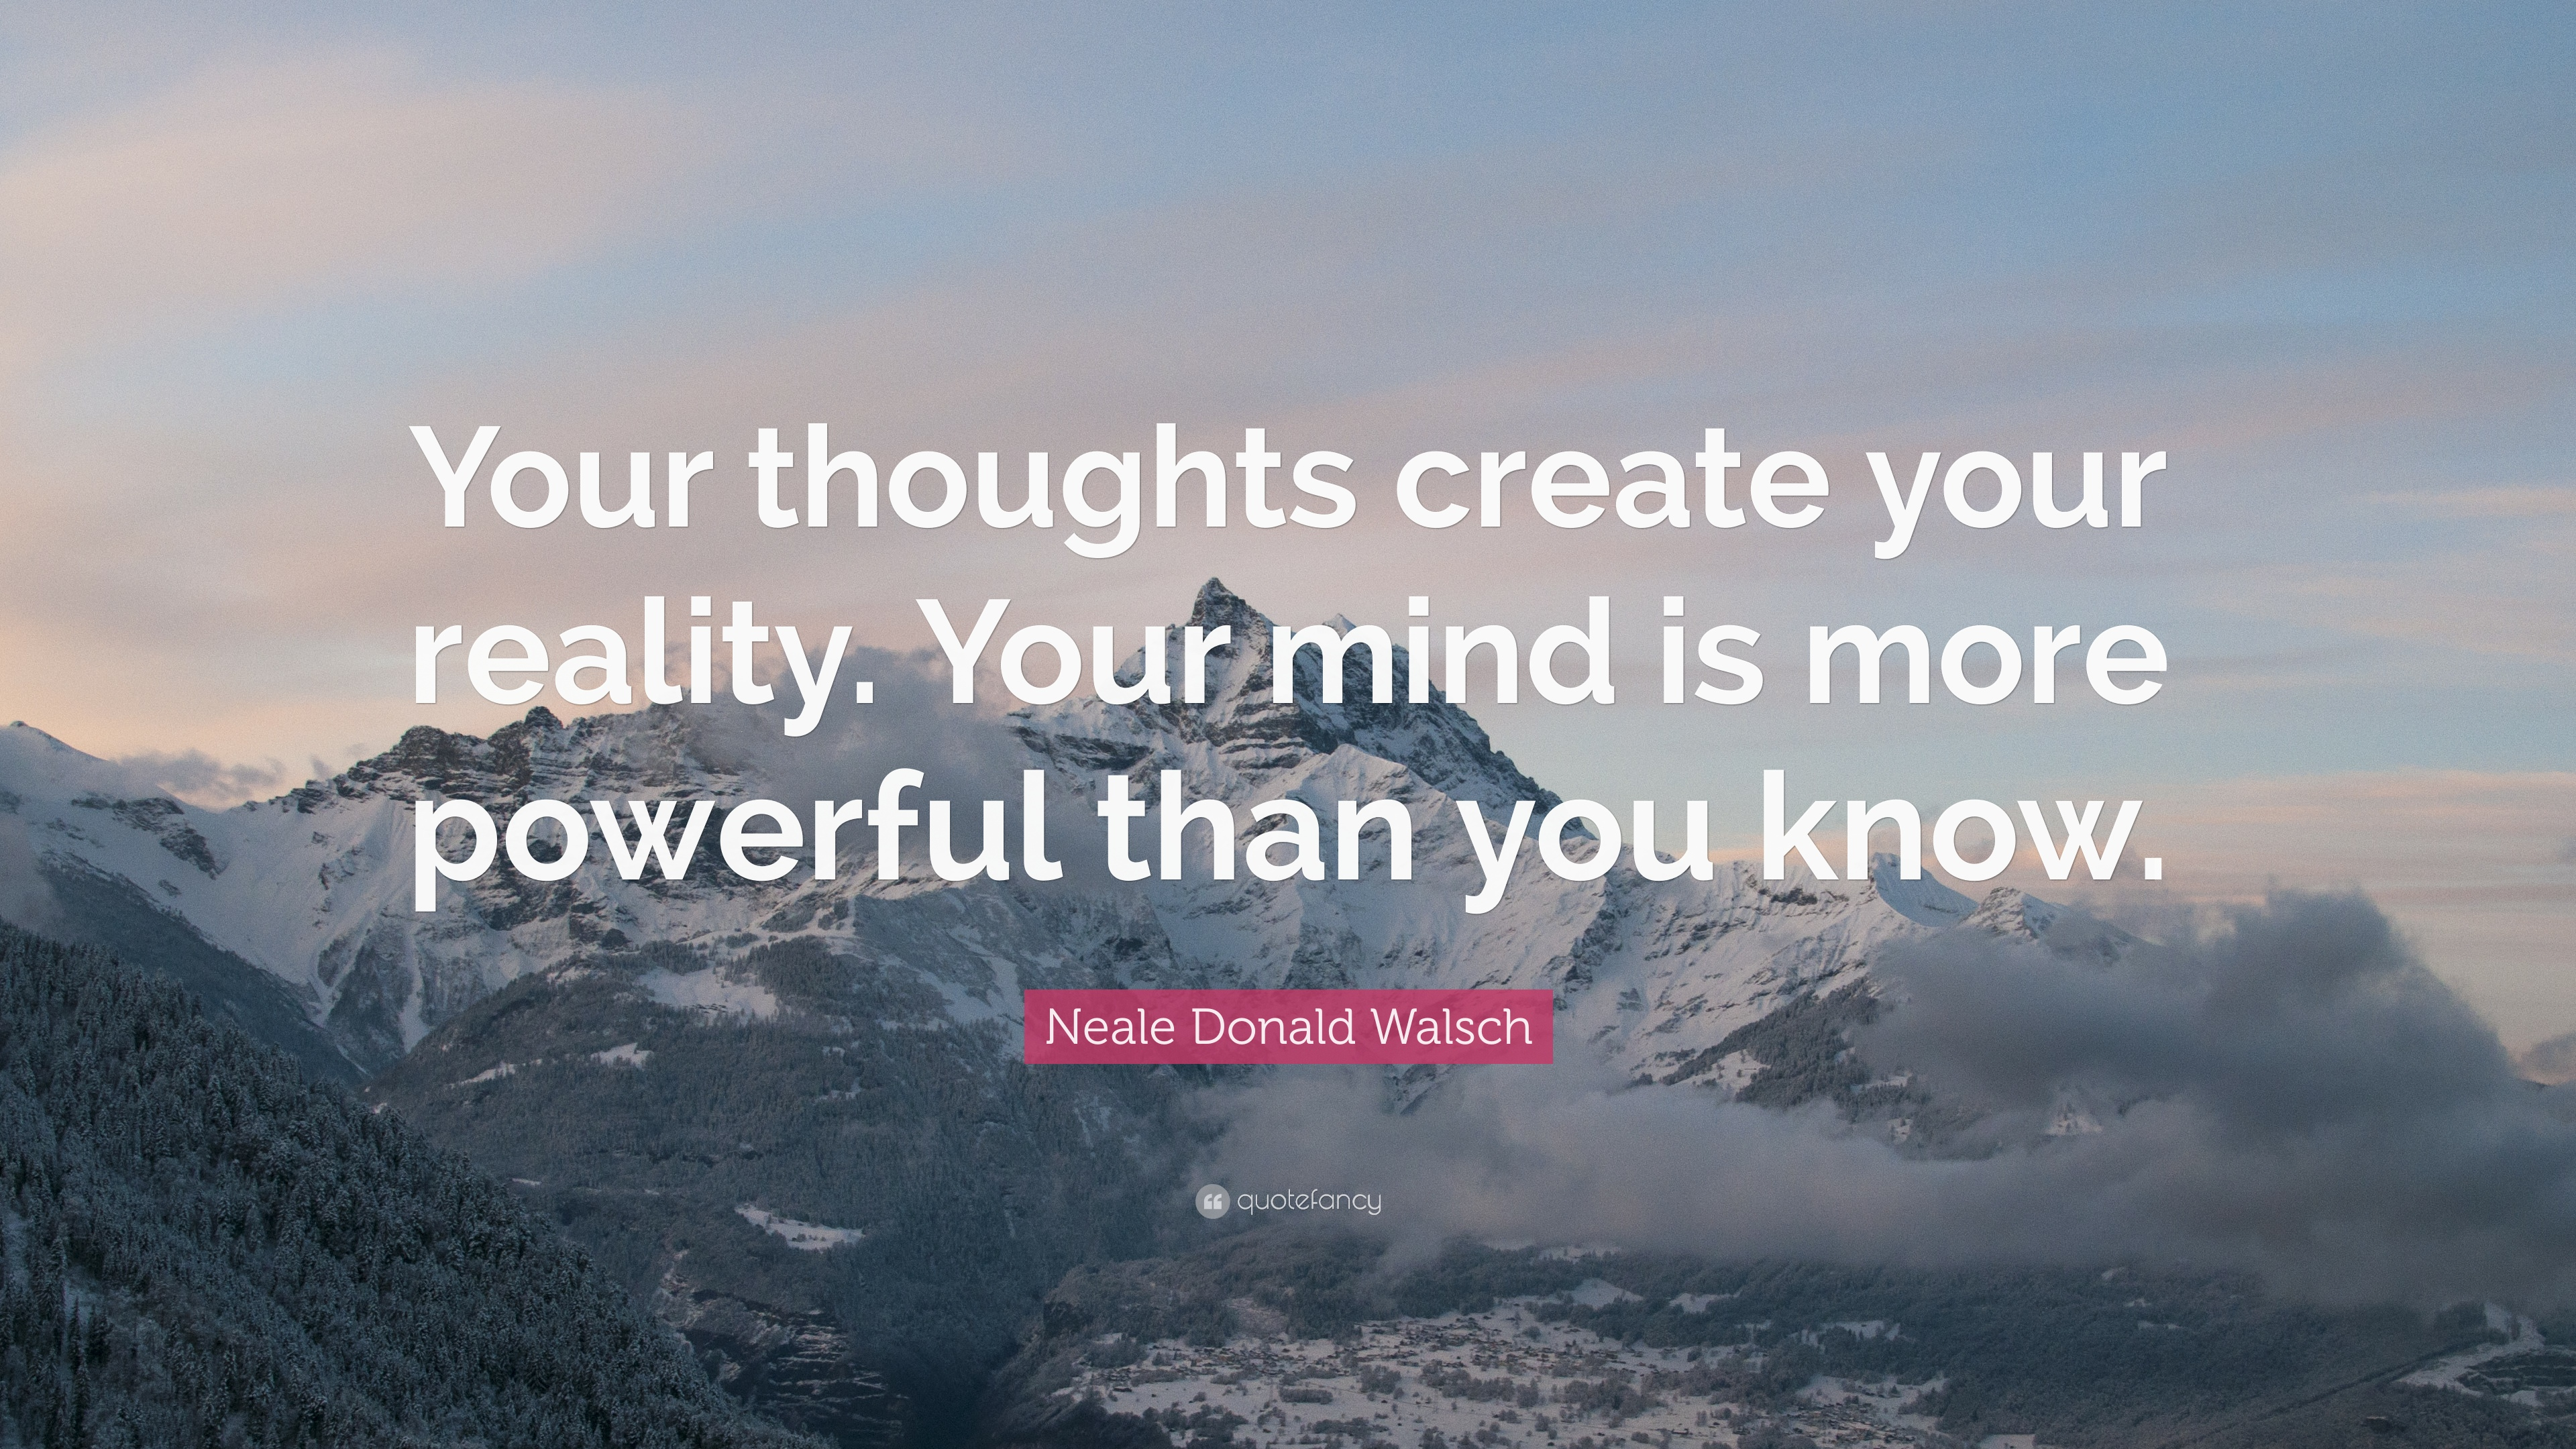 how to create a mind quotes